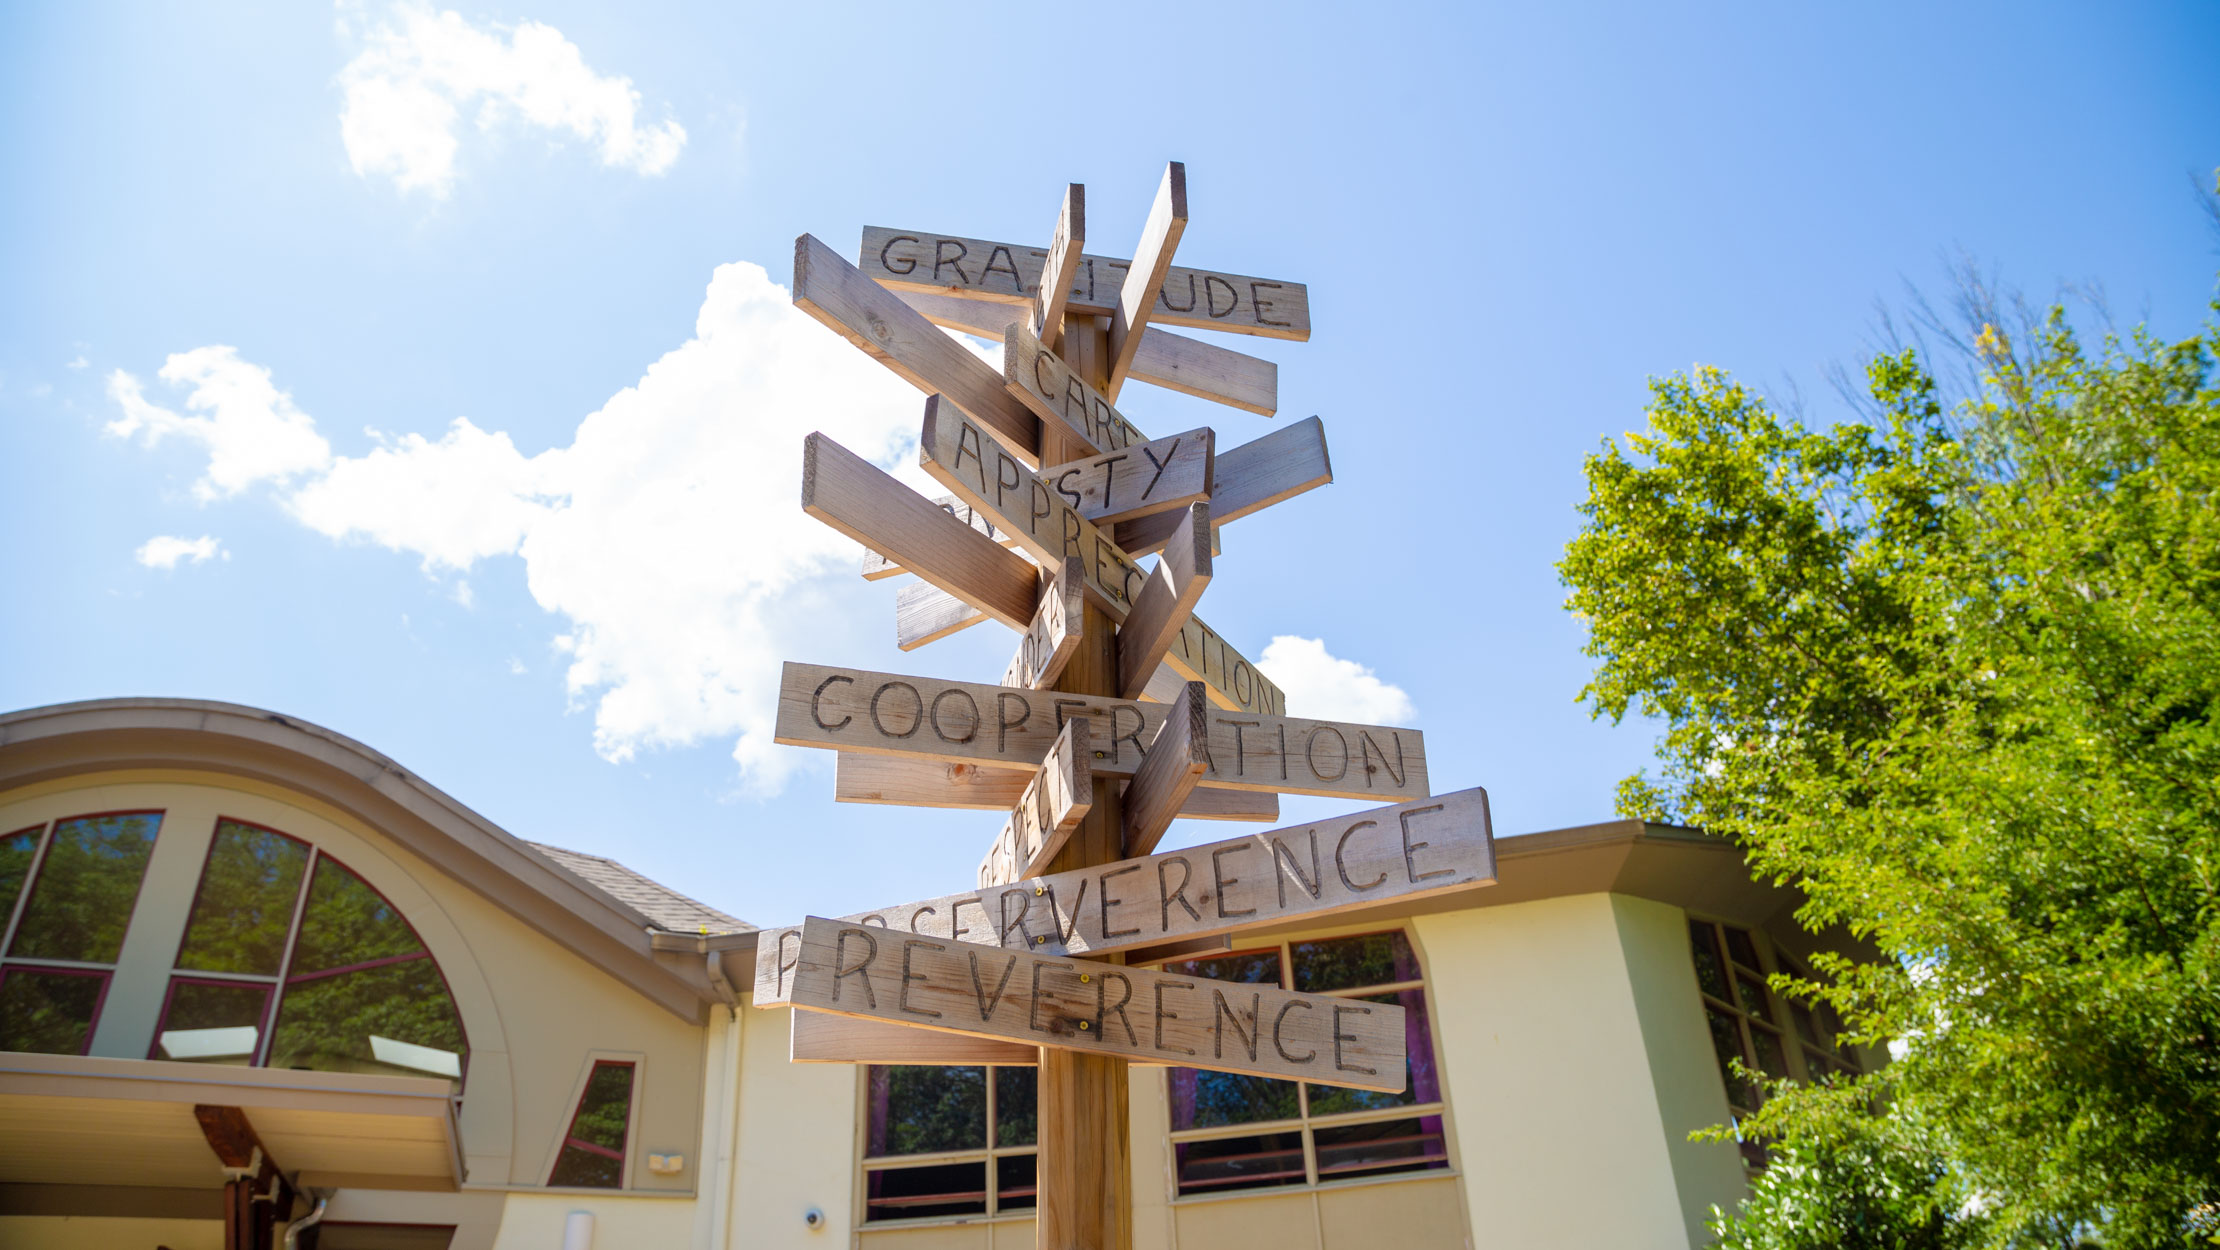 Sign post with many different signs pointing in various directions